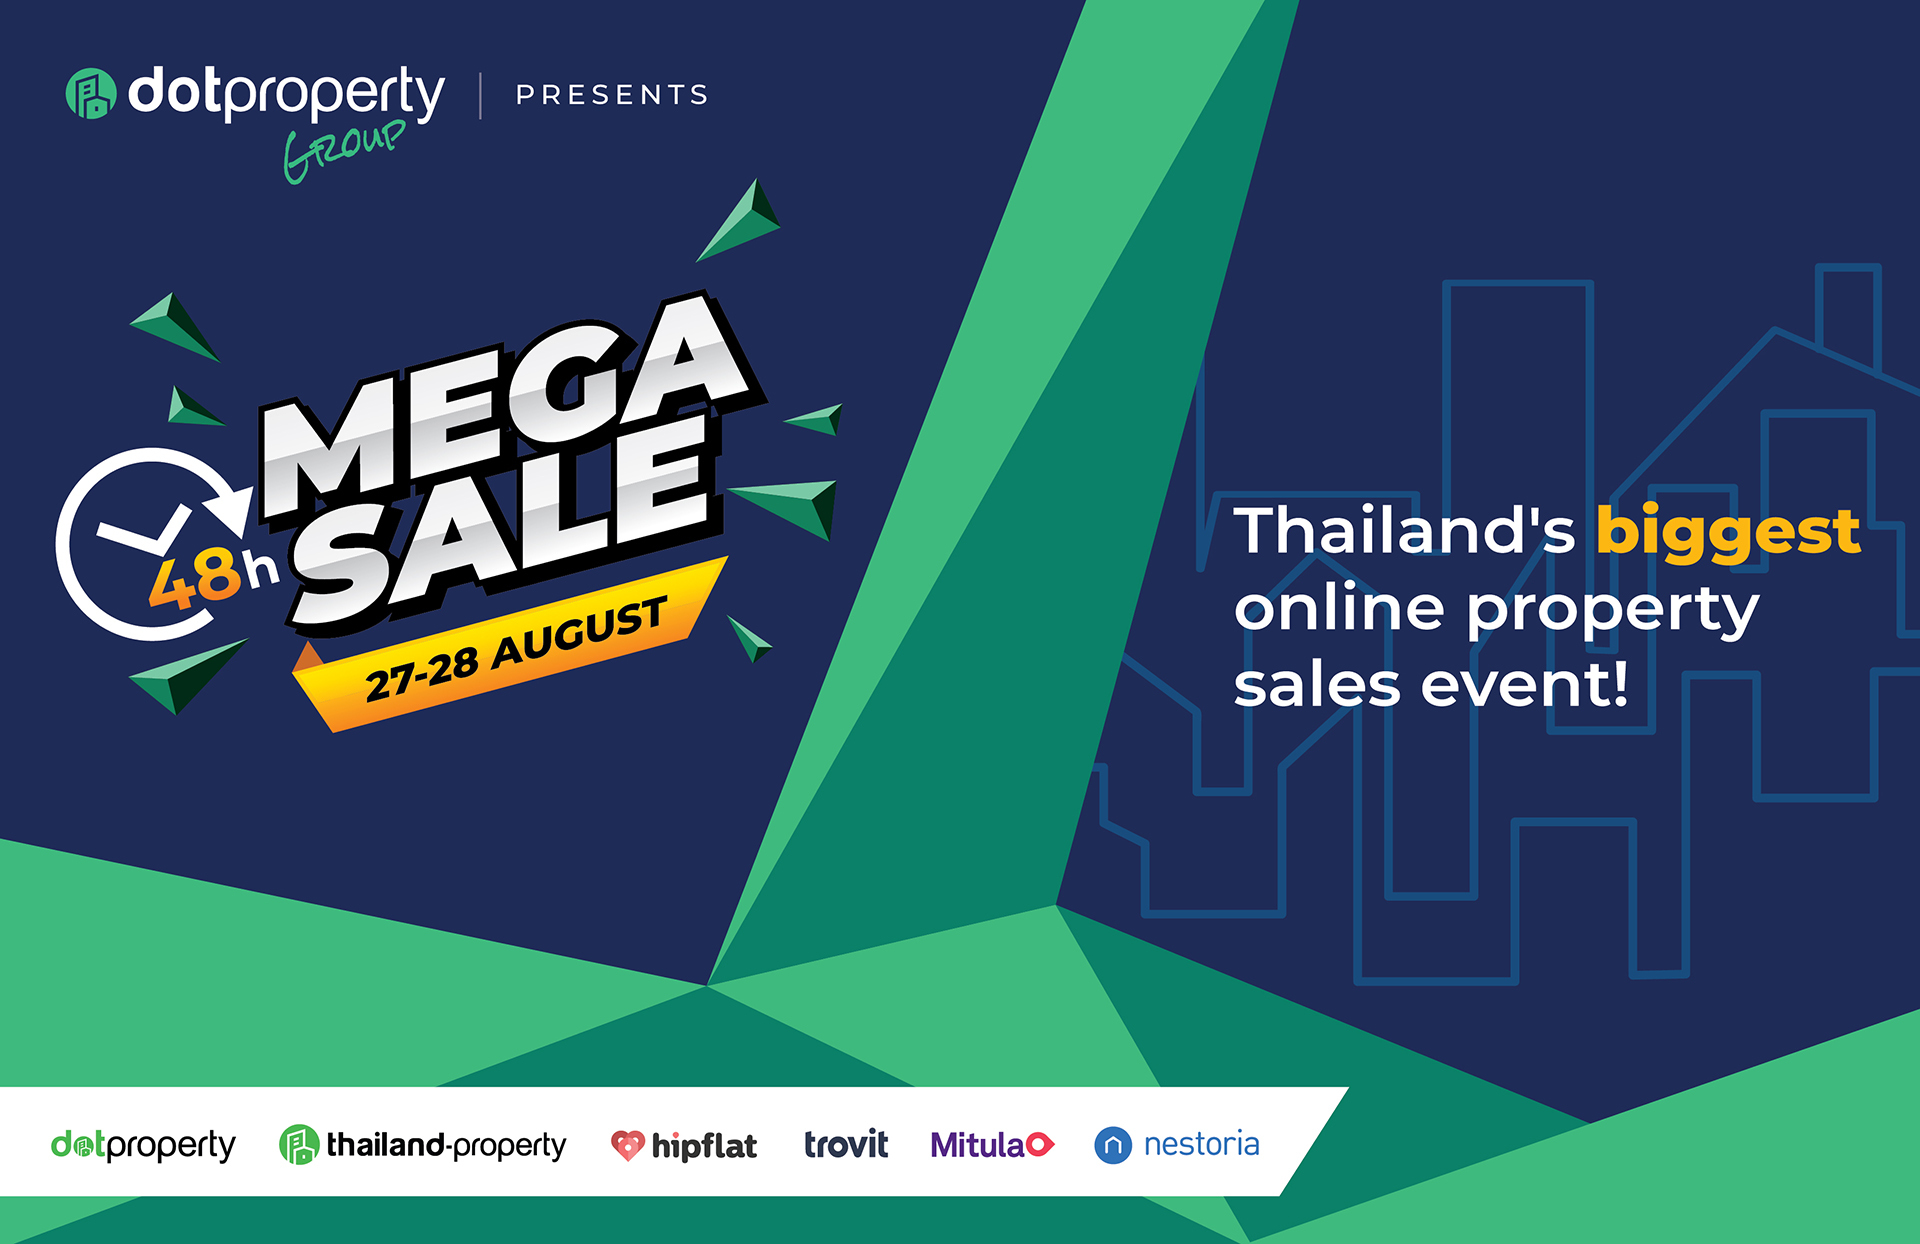 Thailand's biggest online property sales event returns in 2021 with even more deals